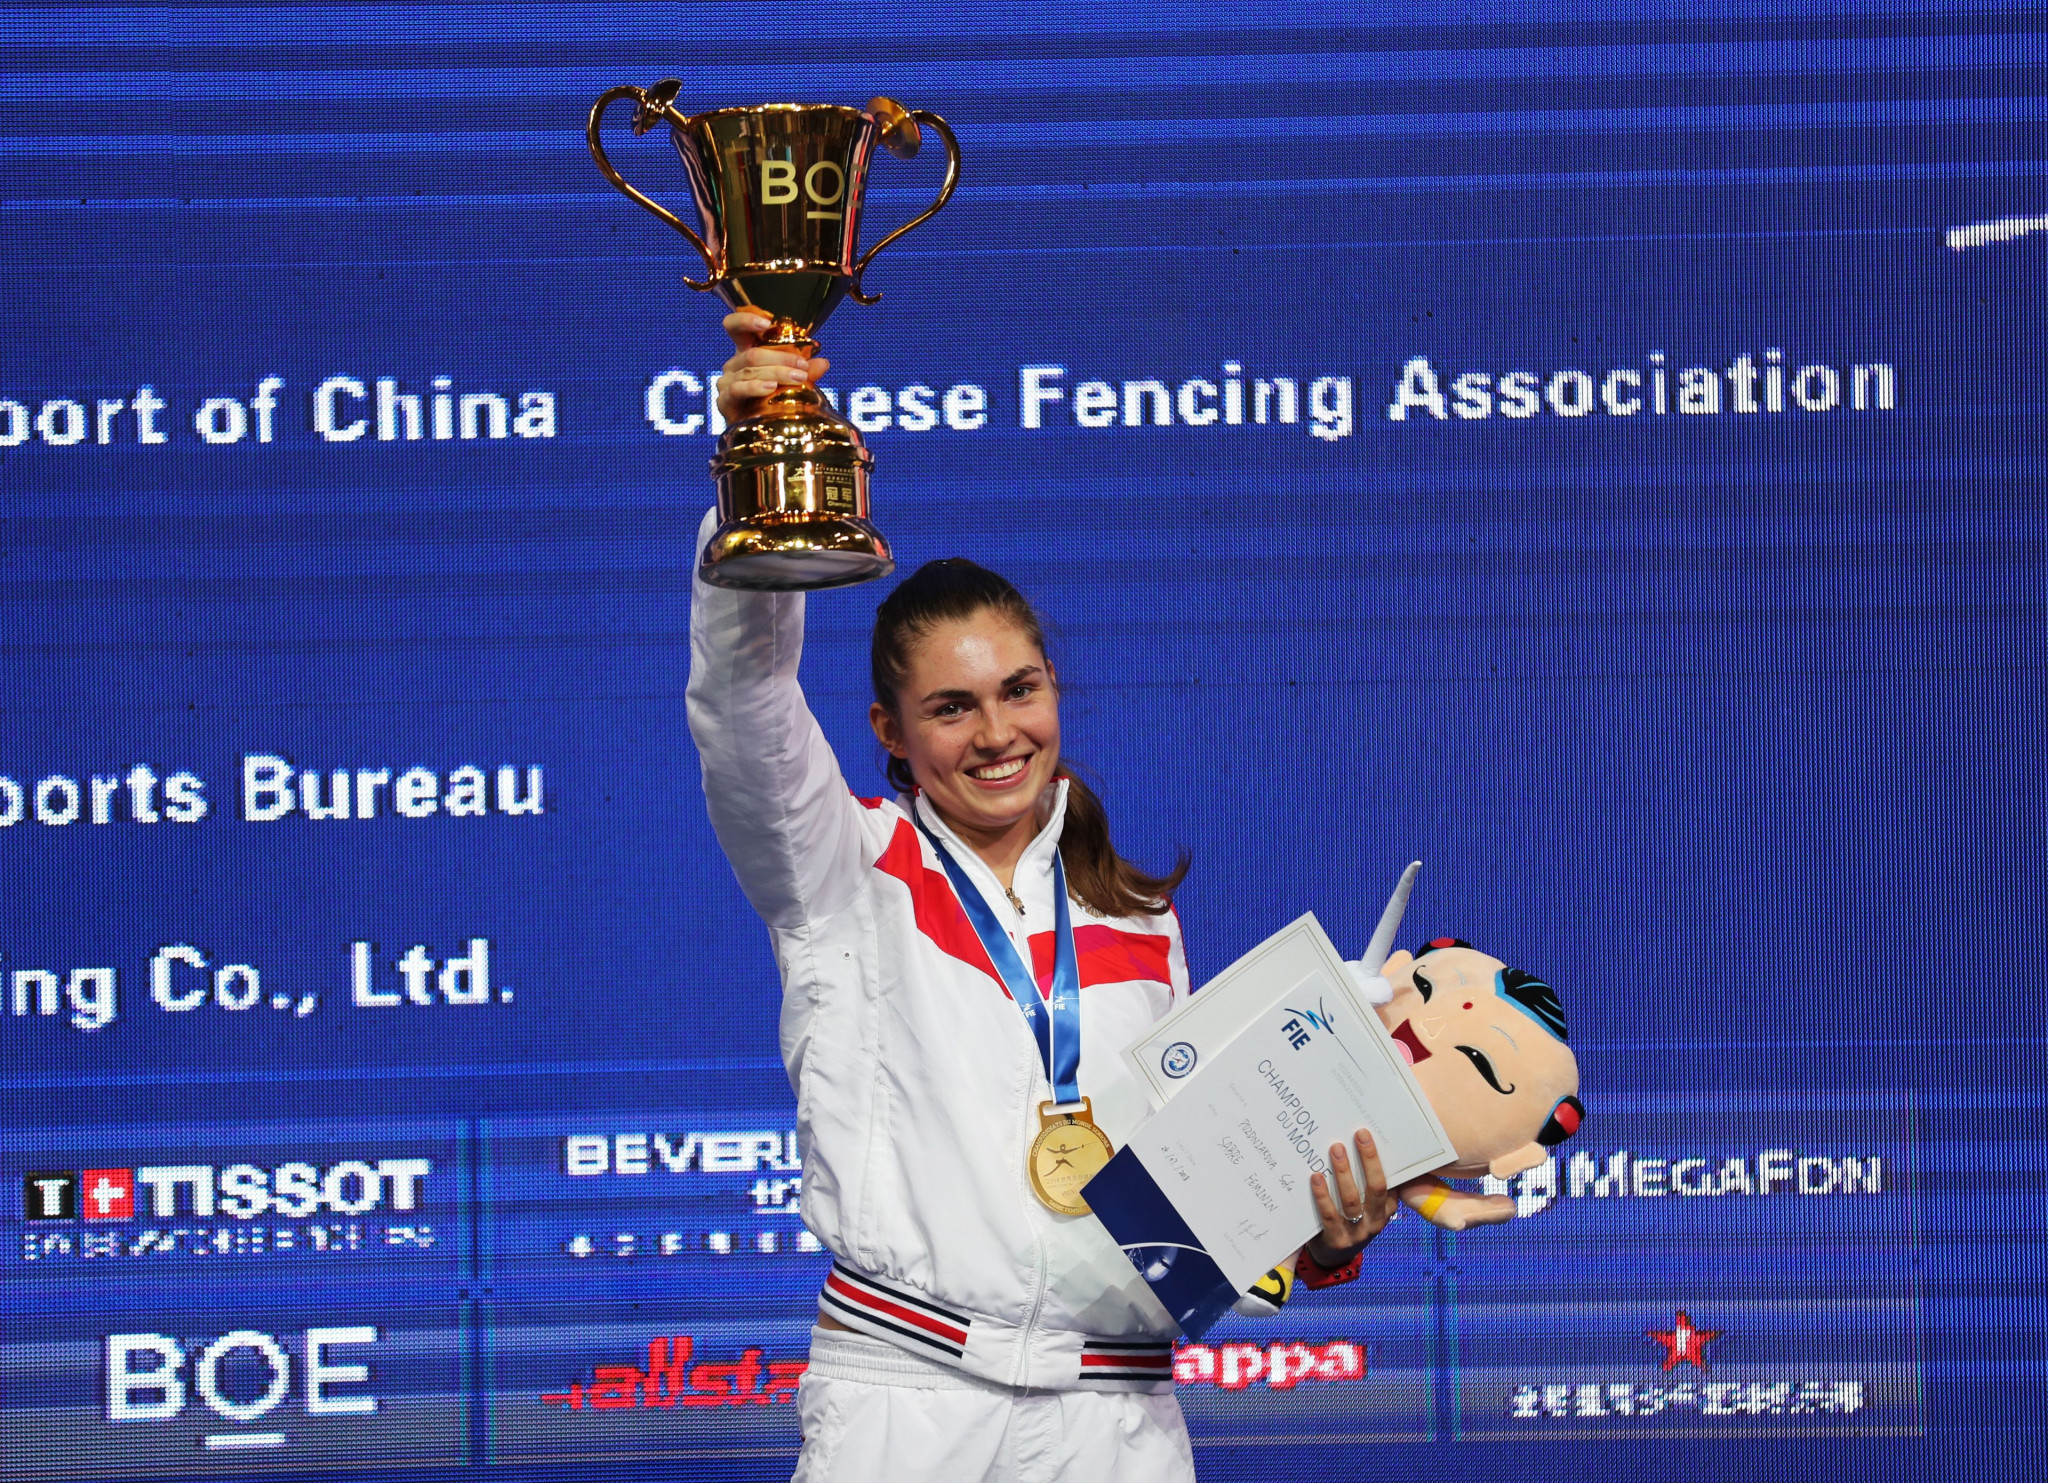 Sofia Pozdniakova, the daughter of Stanislav Pozdnyakov, was crowned world fencing champion last month ©Getty Images